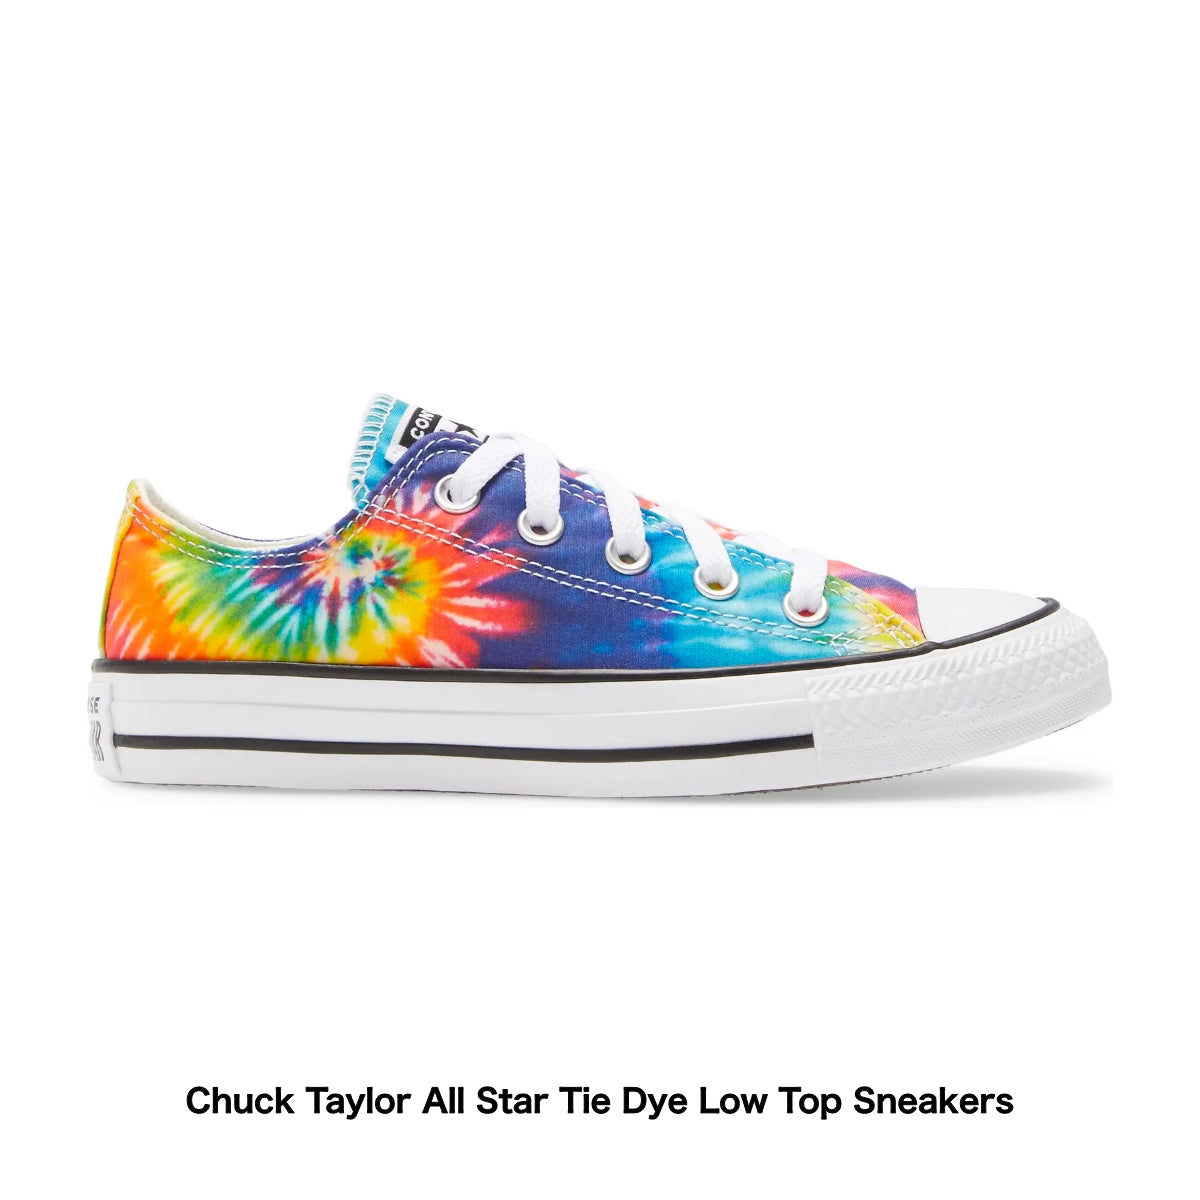 Chuck Taylor All Star Tie Dye Low Top Sneakers - Nordstrom